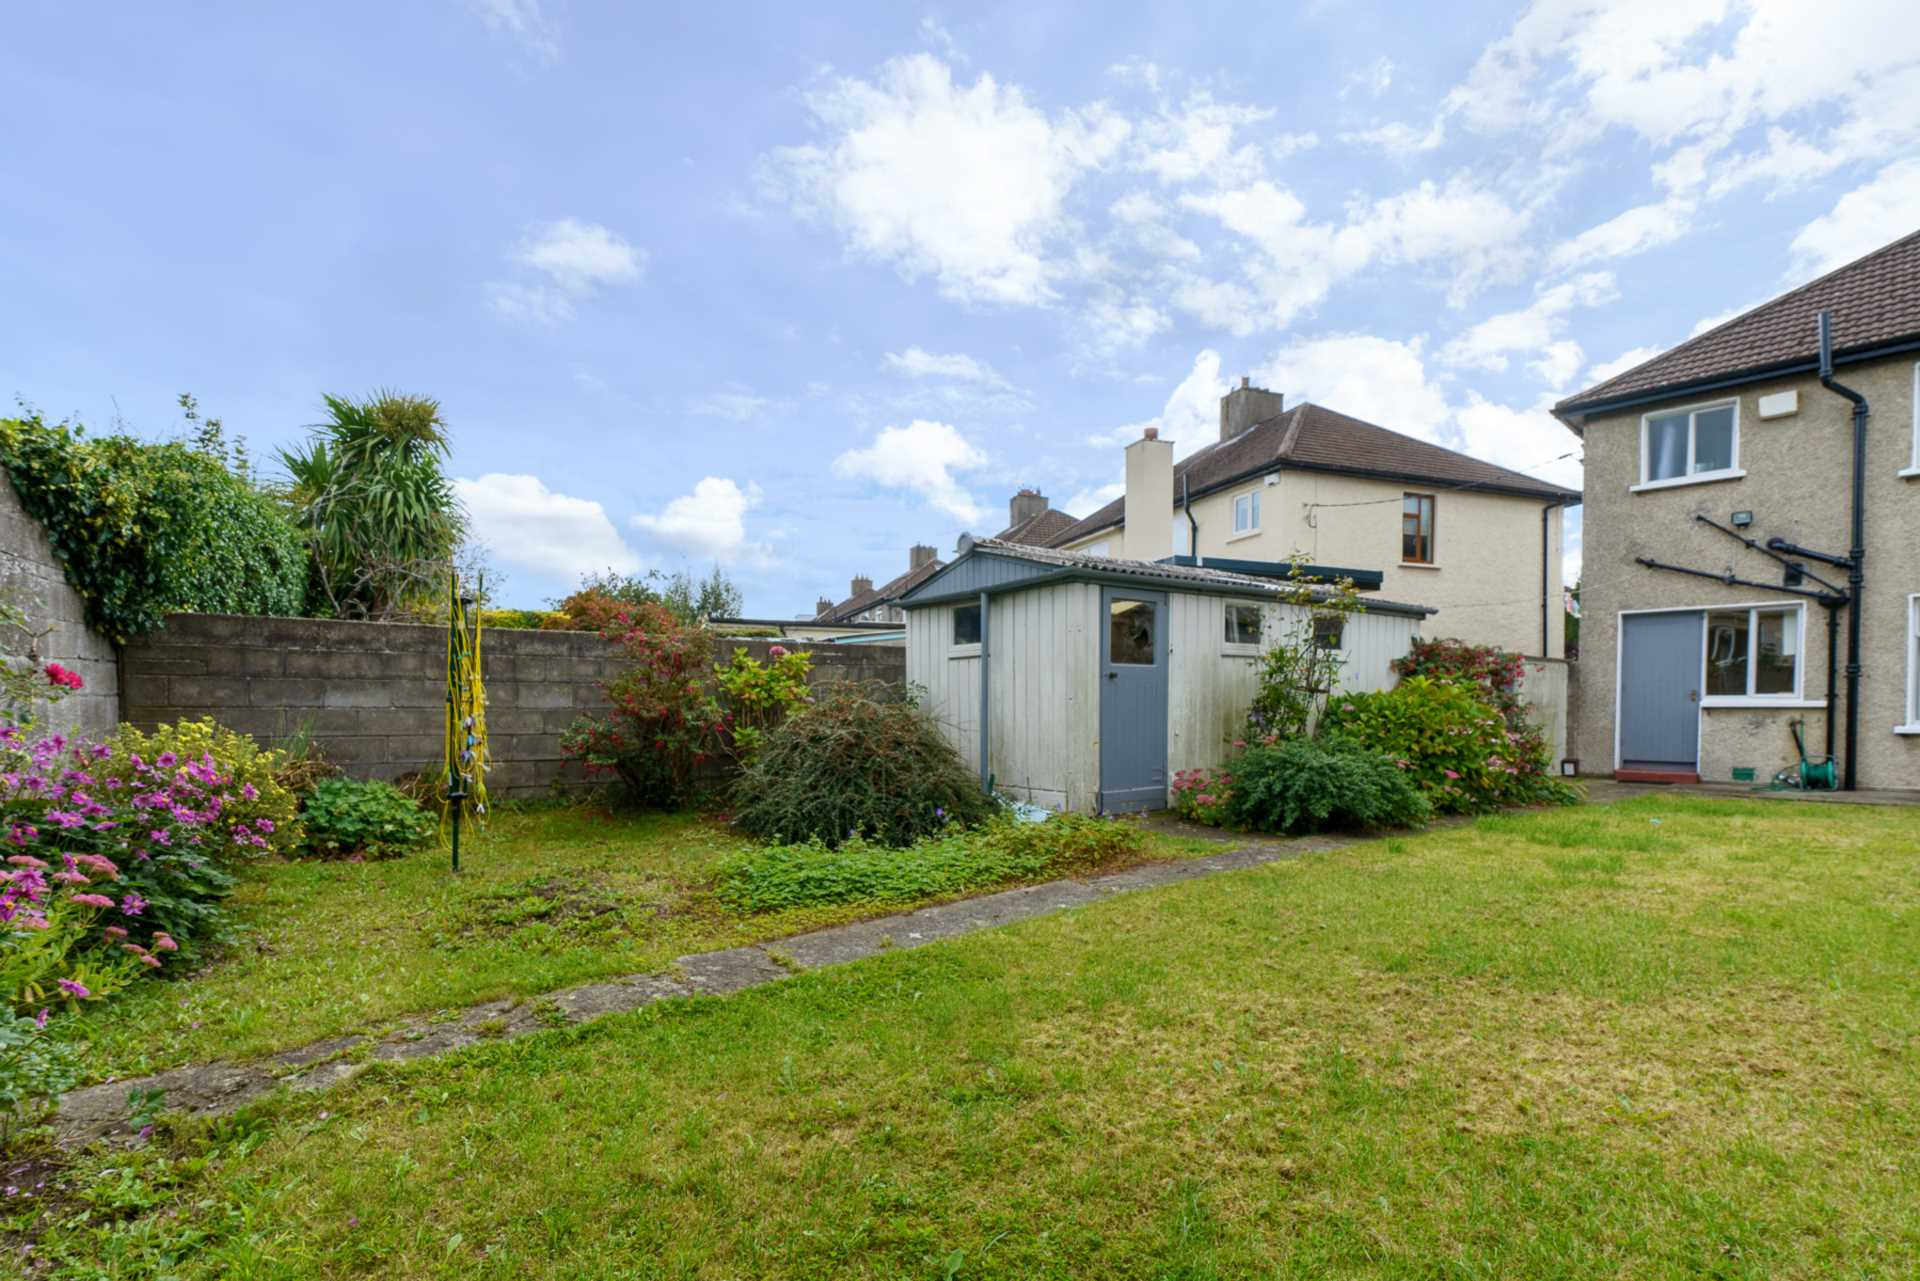 57 Seafield Crescent, Booterstown, Co Dublin, Image 19